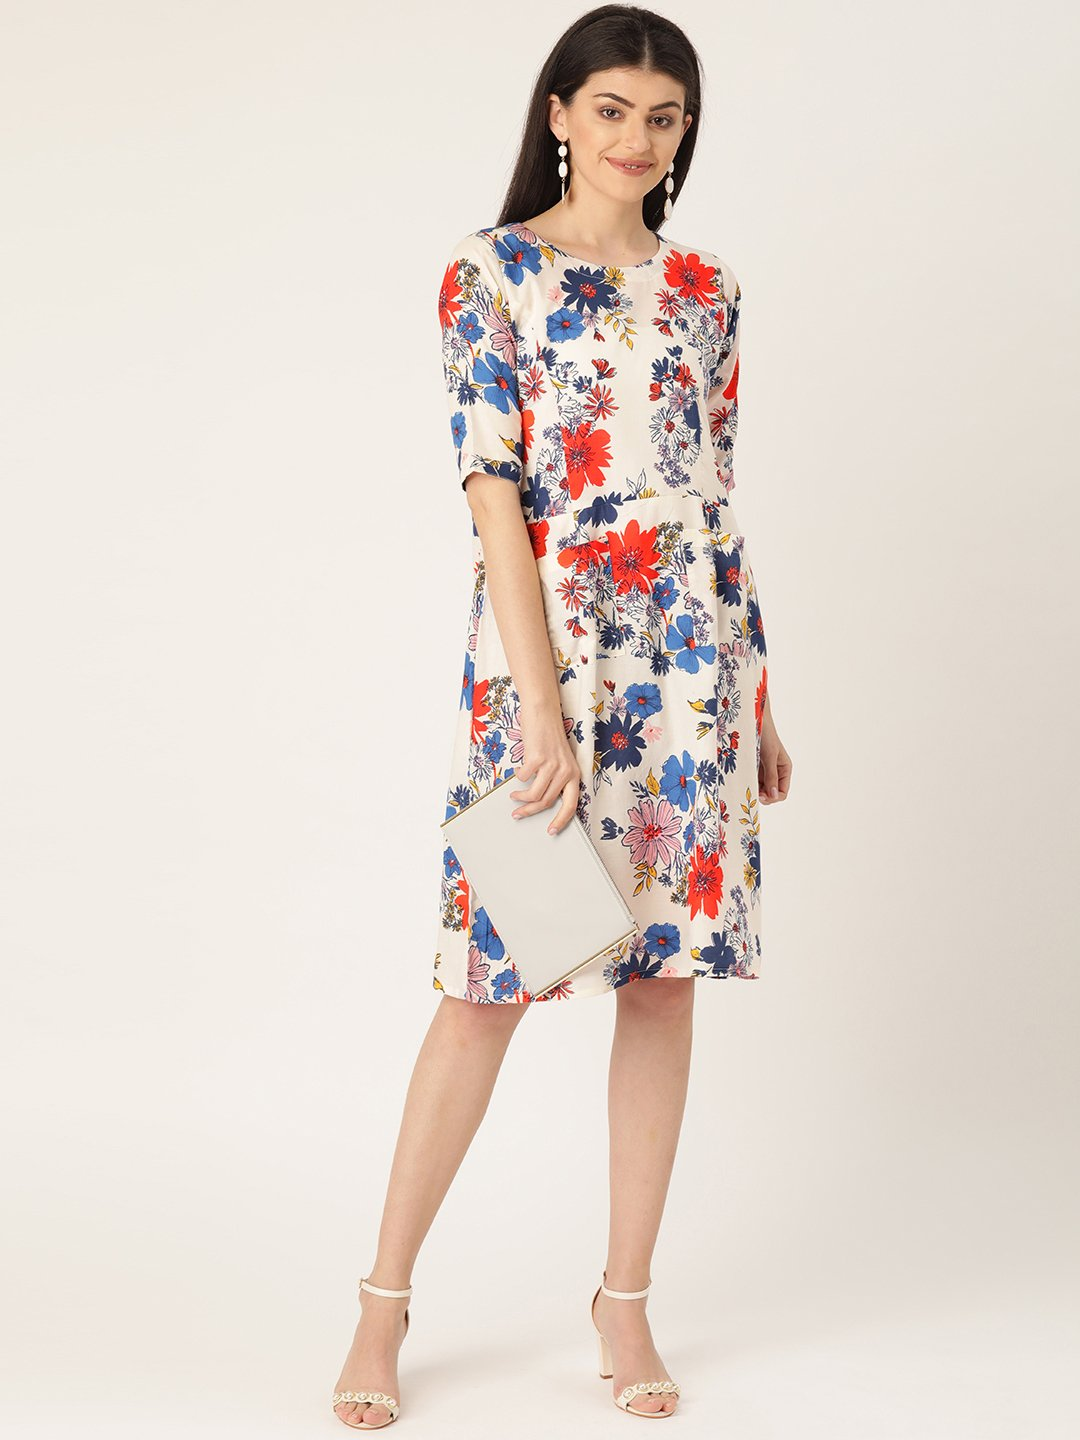 Floral Printed Dress With Pockets